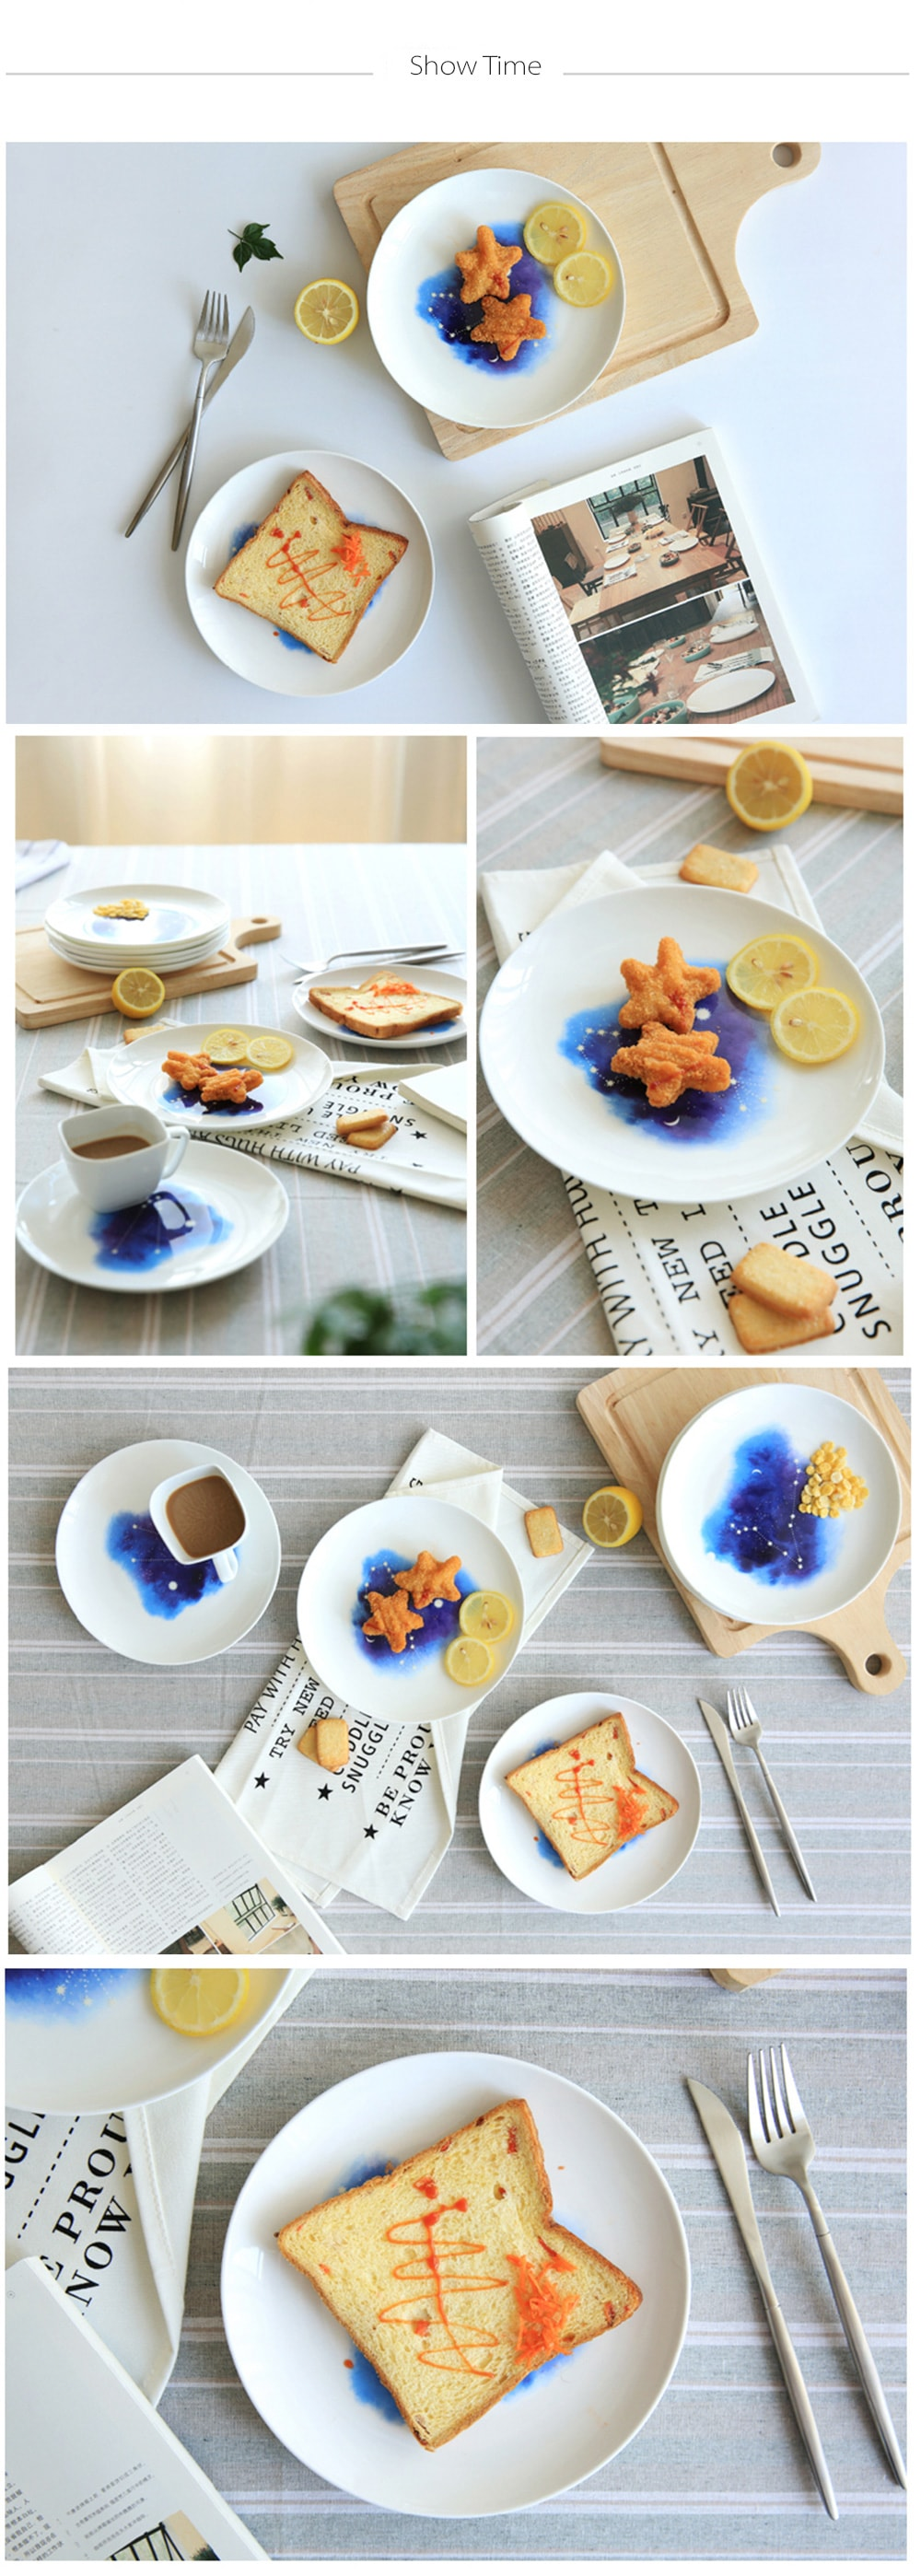 Kawasimaya Plate Zodiac Collection What Is Your Constellation?